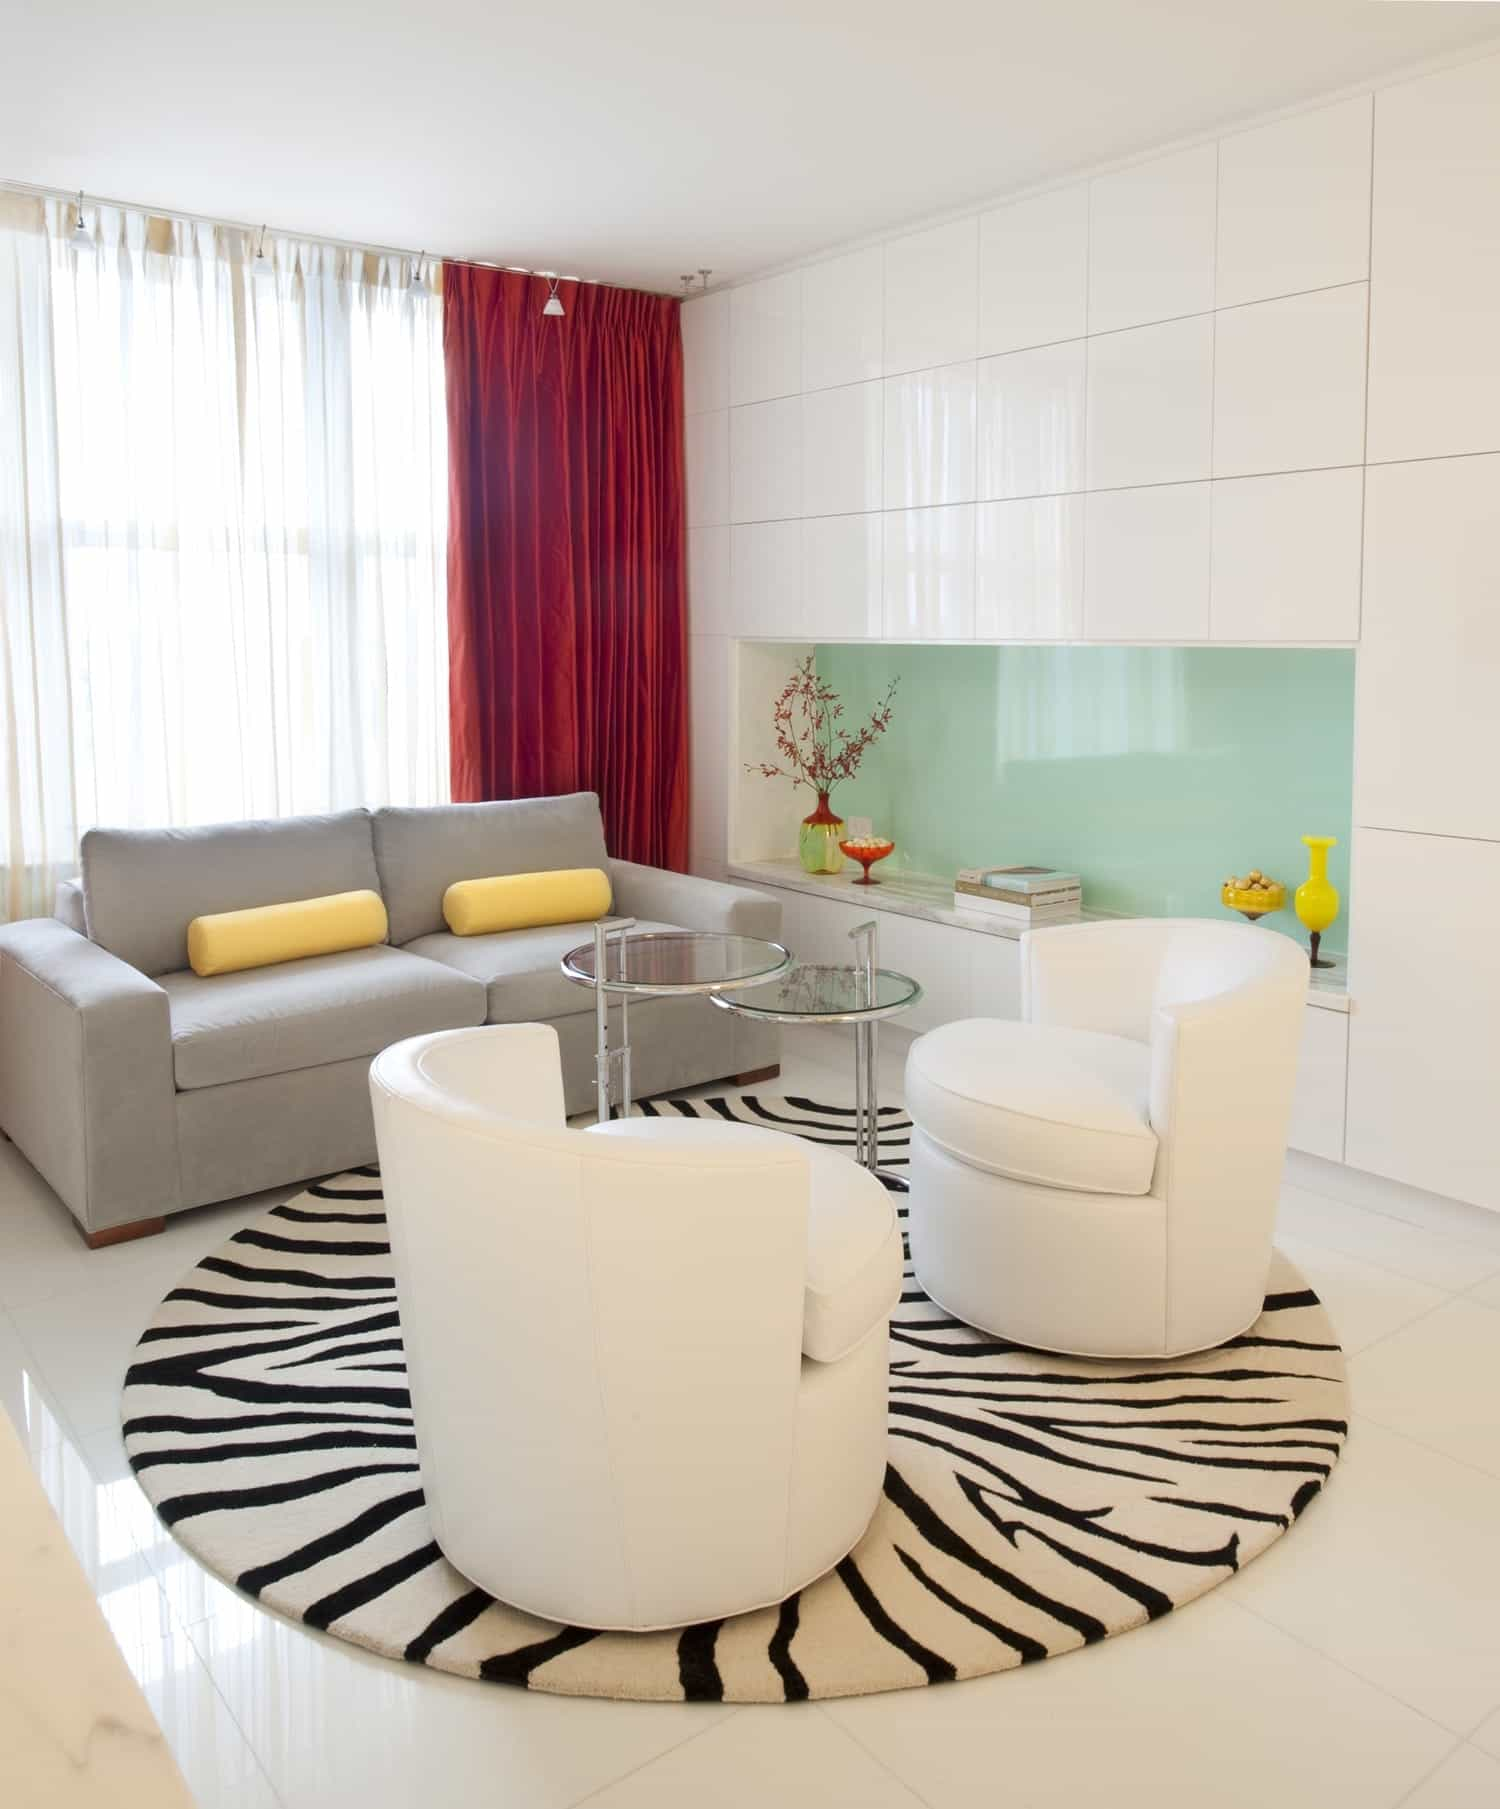 Featured Image of Modern White Ceramic Wall Tiles For Living Room Interior